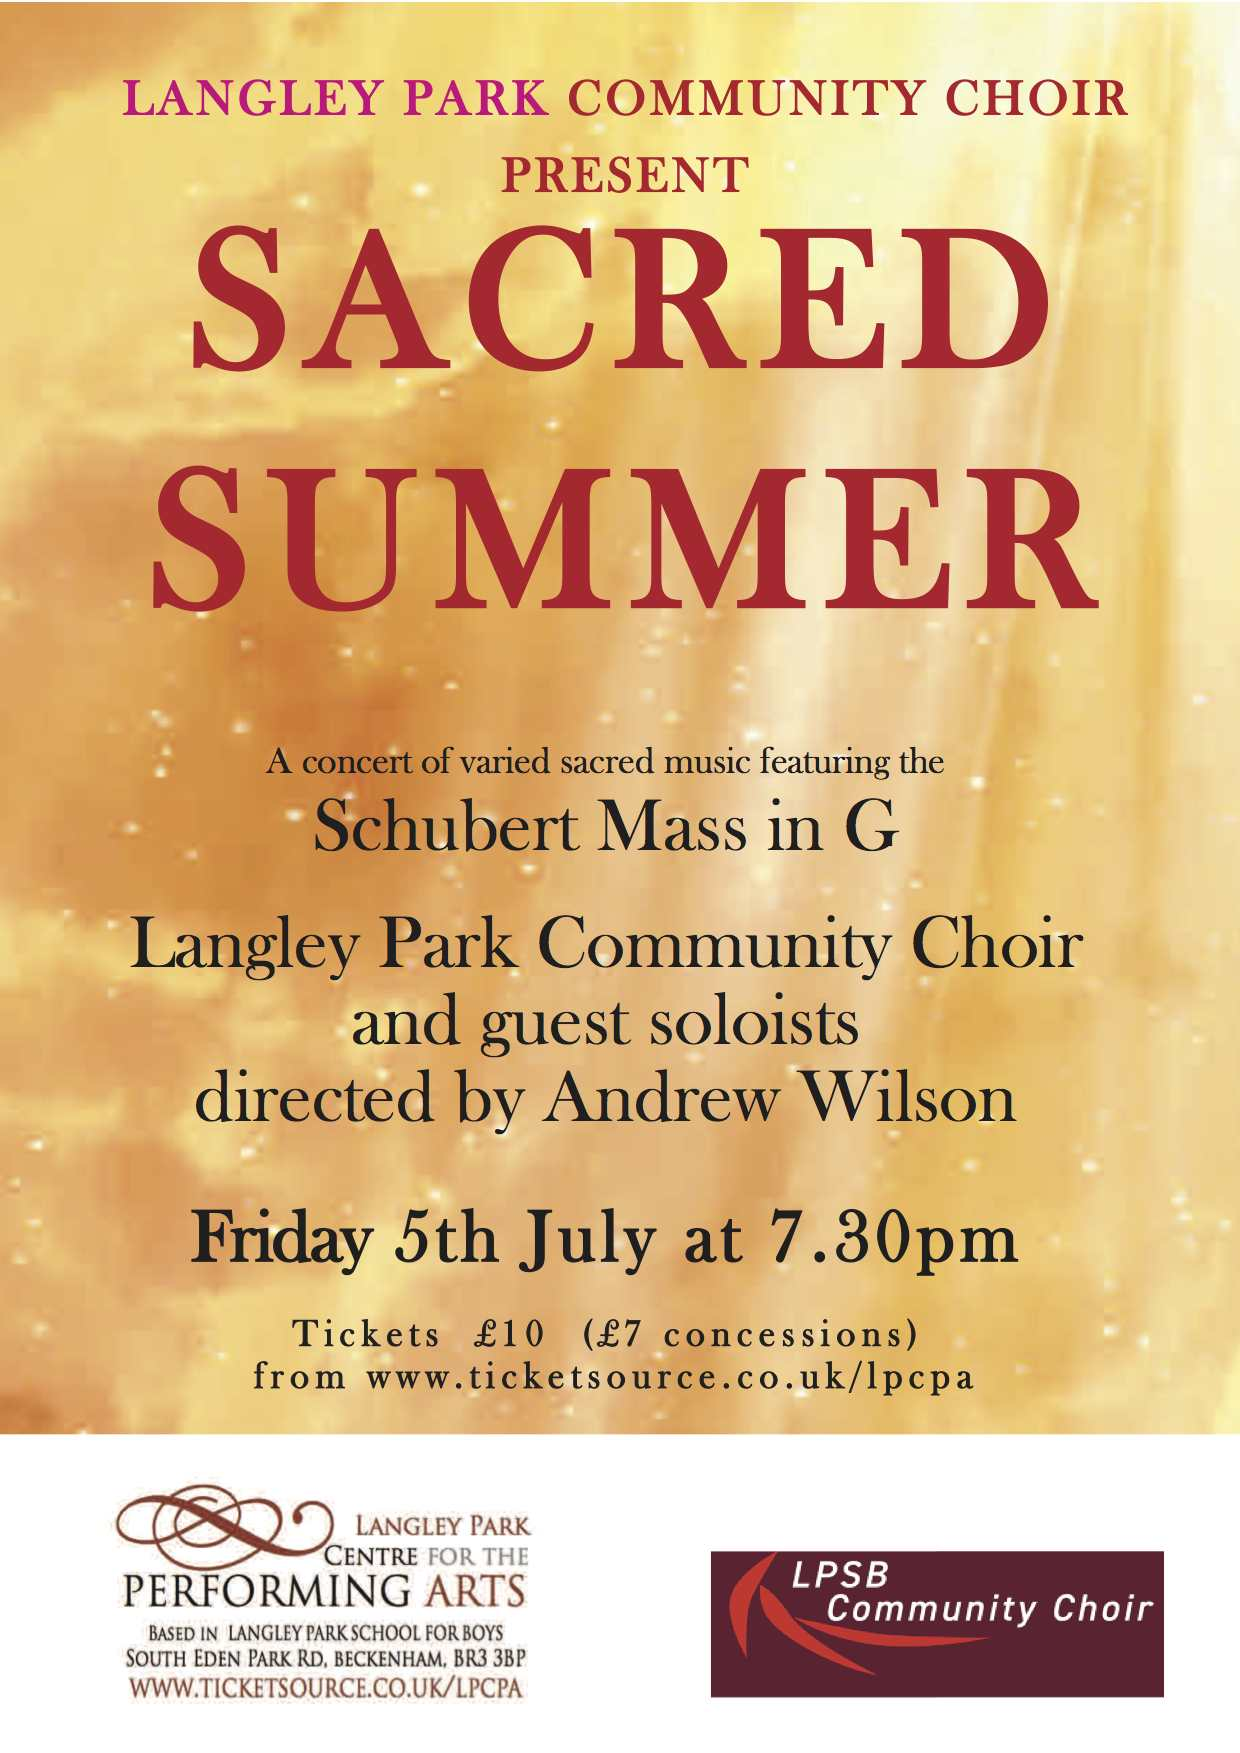 SACRED SUMMER with The Langley Park Community Choir banner image